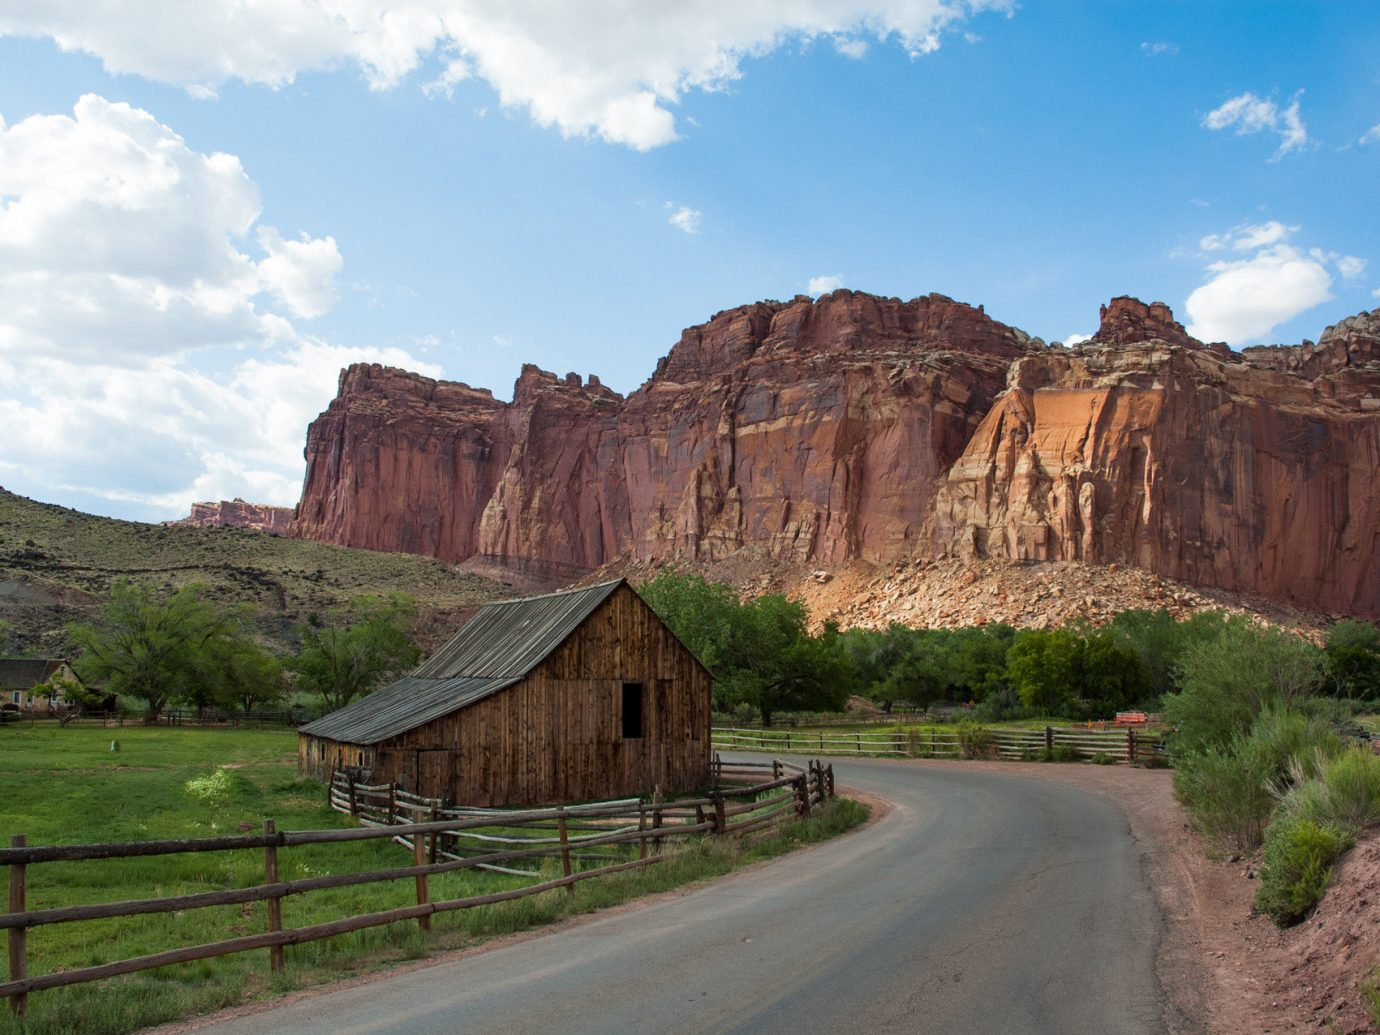 National Parks Outdoors + Adventure Trip Ideas grass sky mountain outdoor mountainous landforms geographical feature landform badlands valley Nature canyon landscape rock wadi rural area old plateau road trip geology terrain national park cliff park lush